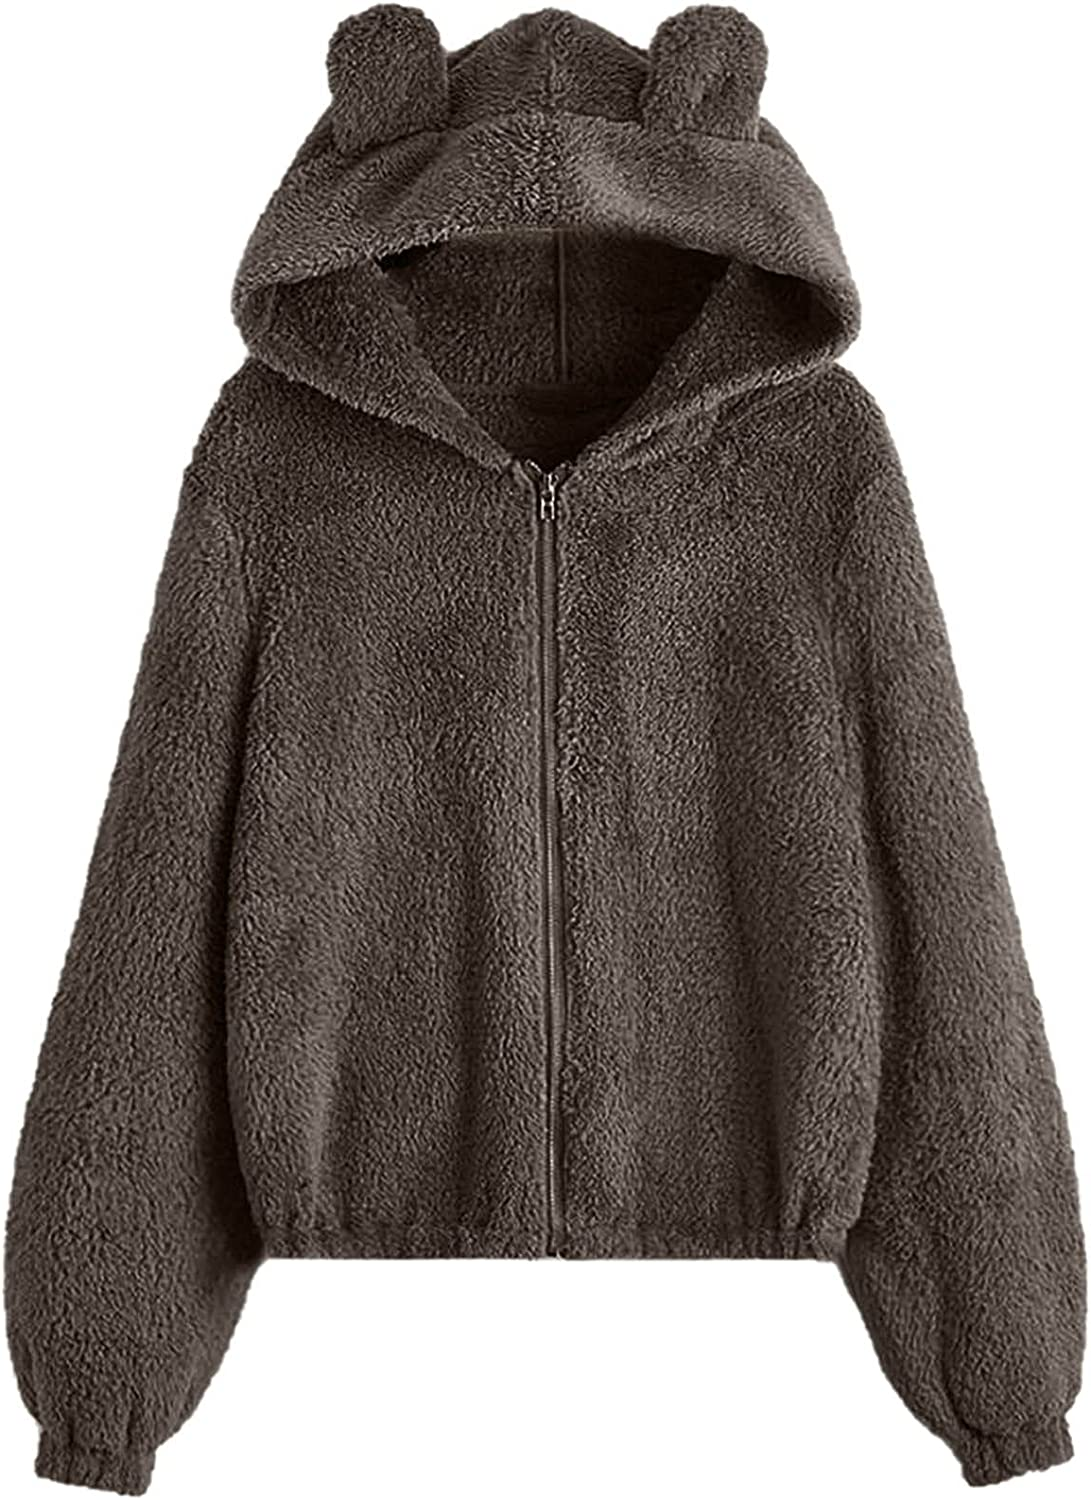 Kanzd Max 49% OFF Jackets Max 59% OFF for Women Fashion Long F Zip Fuzzy Coats Sleeve Up